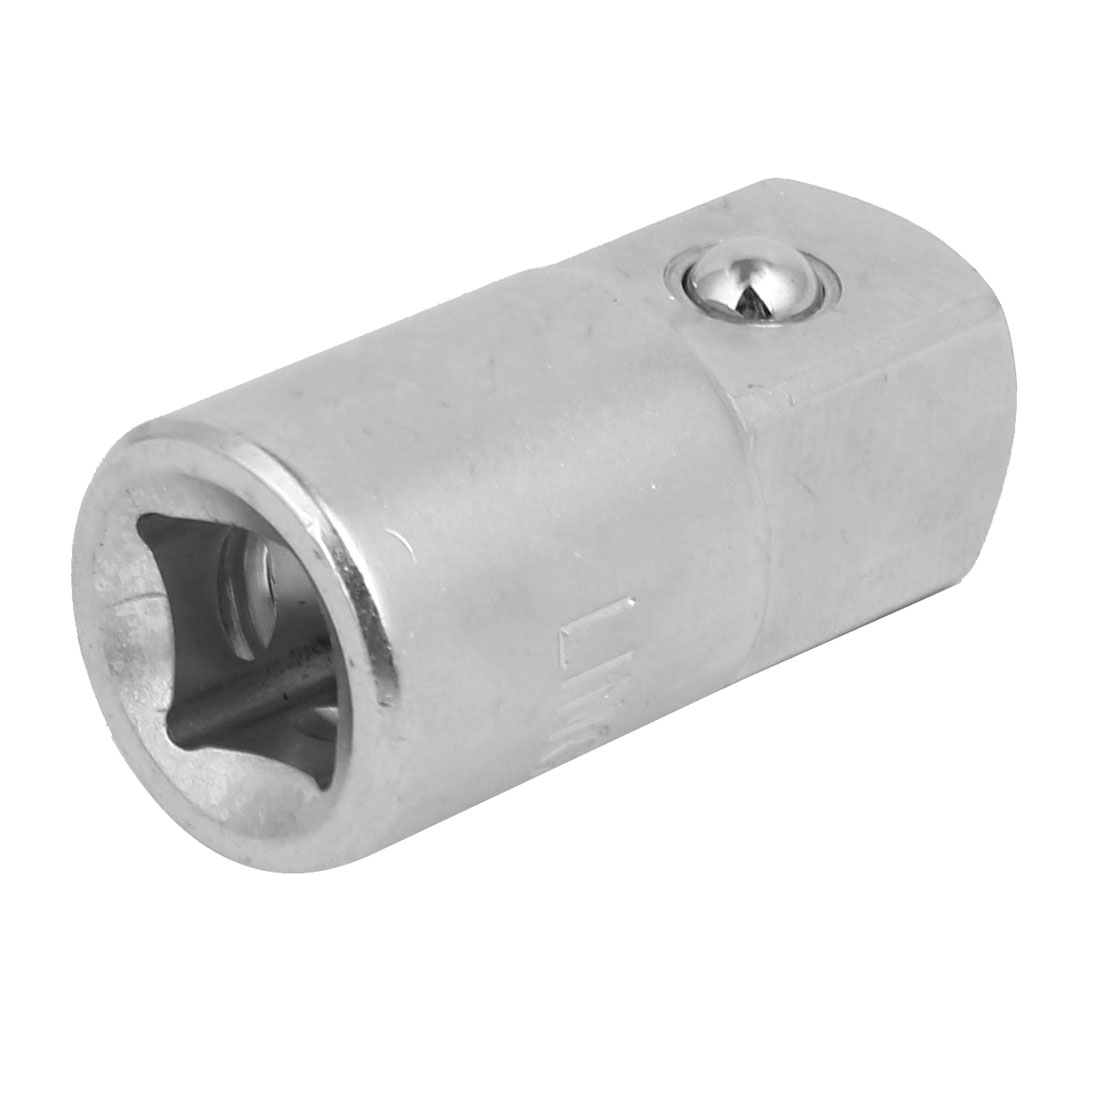 1/2'' Square Hole 3/4'' Square Head CR-V Steel Extension Adapter Impact Socket